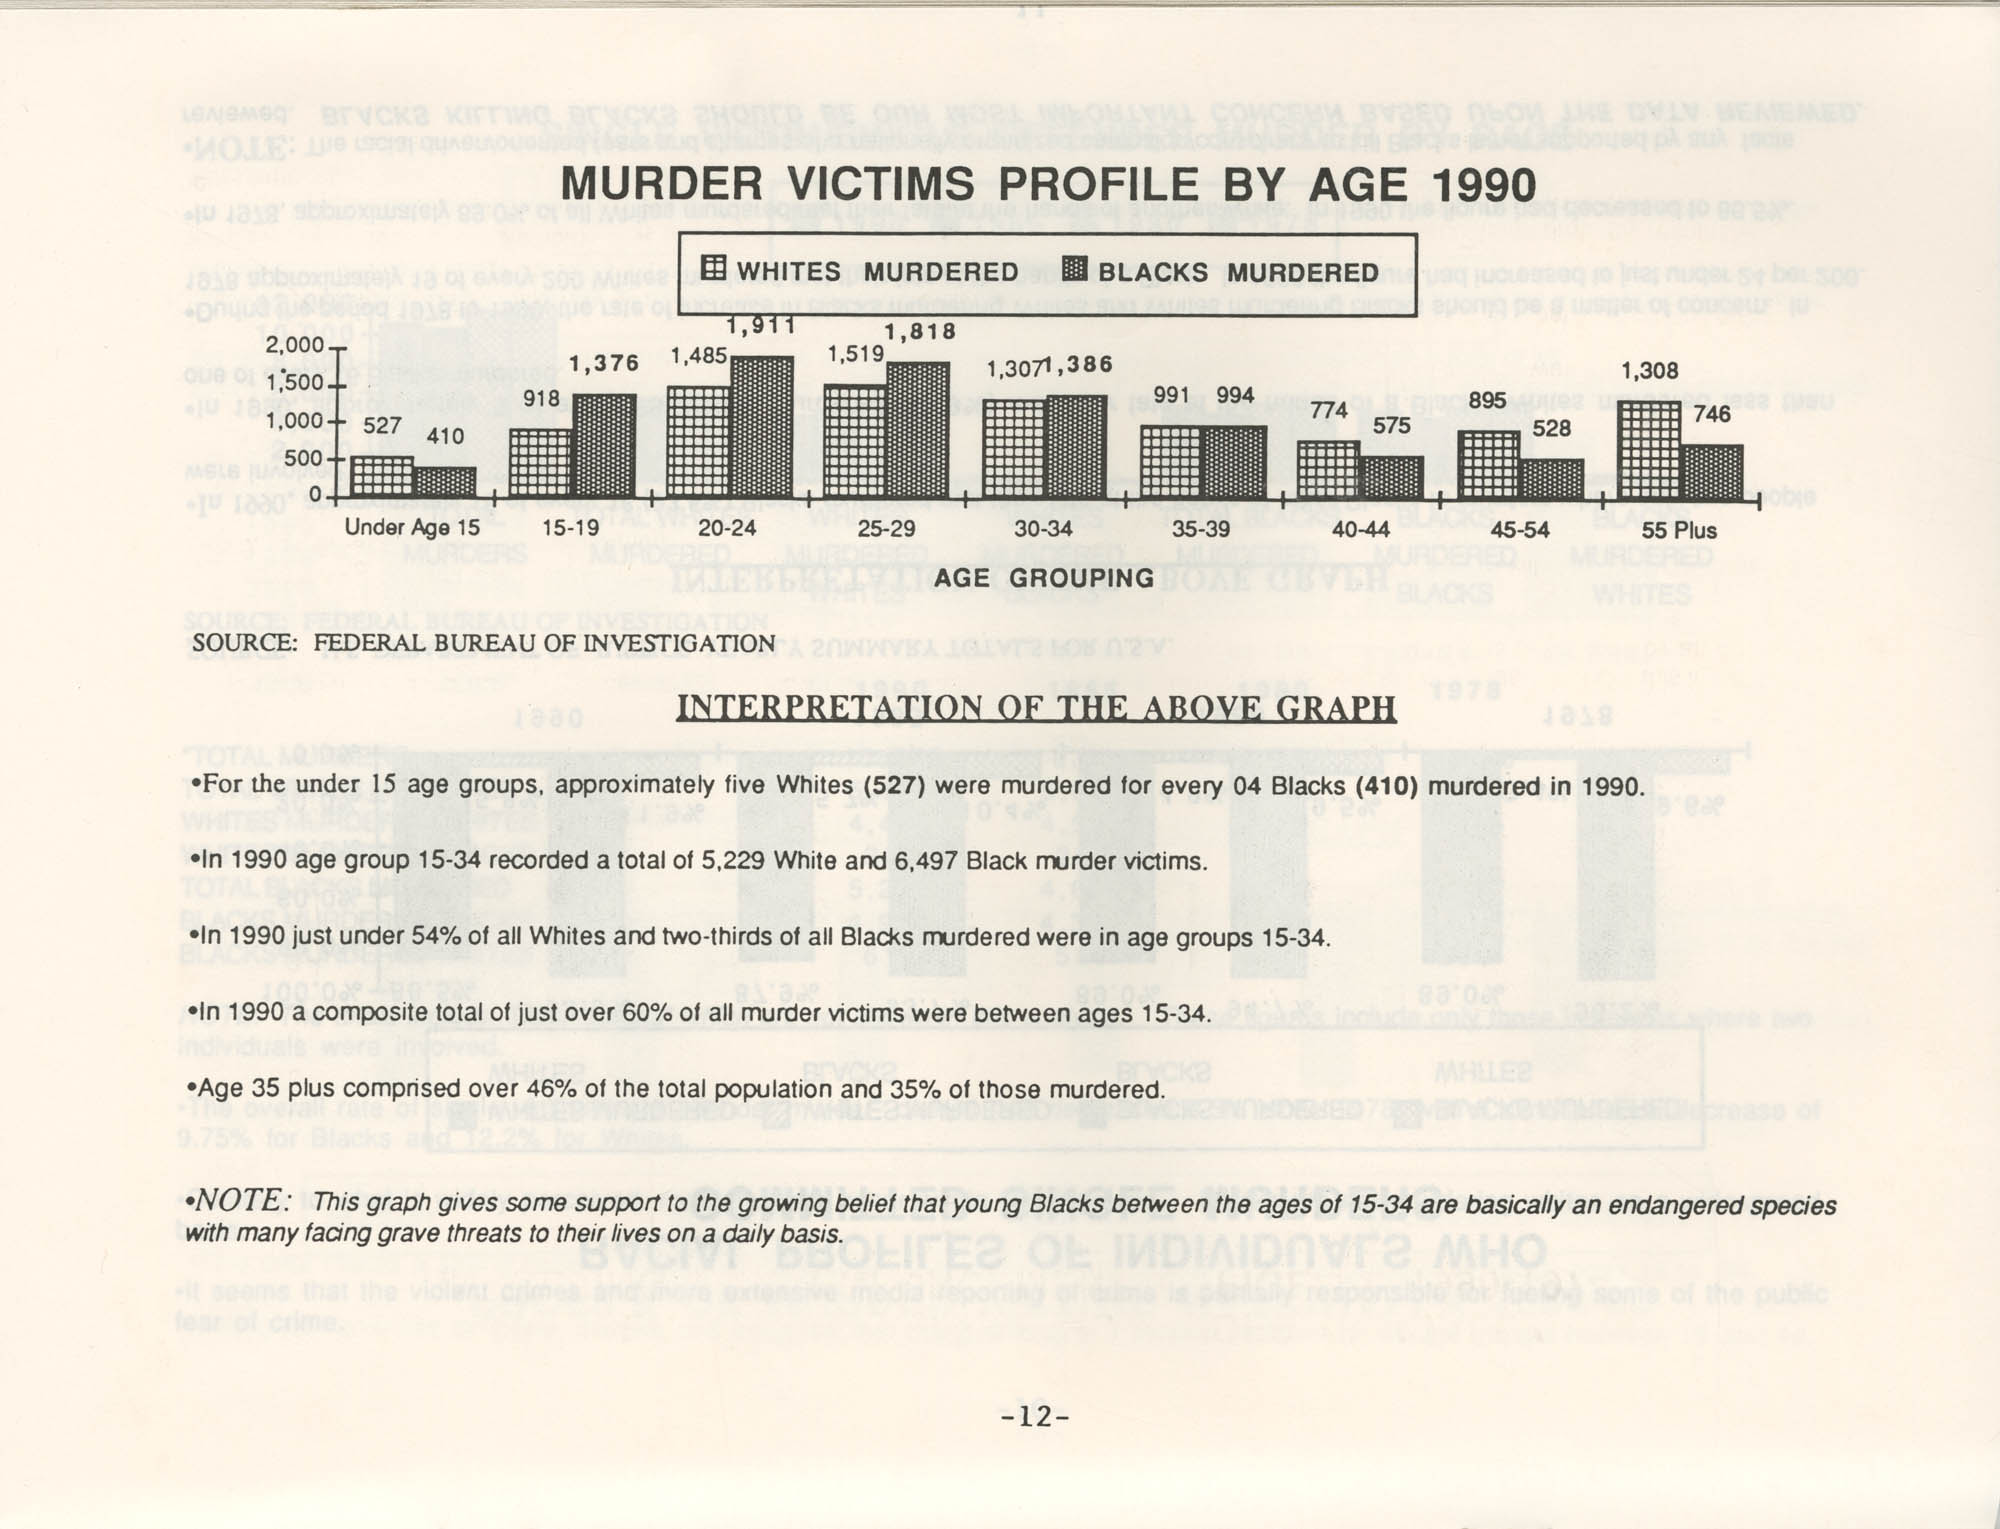 Crime and Criminal Activities in the U.S.A., NAACP National Board of Directors, Page 12